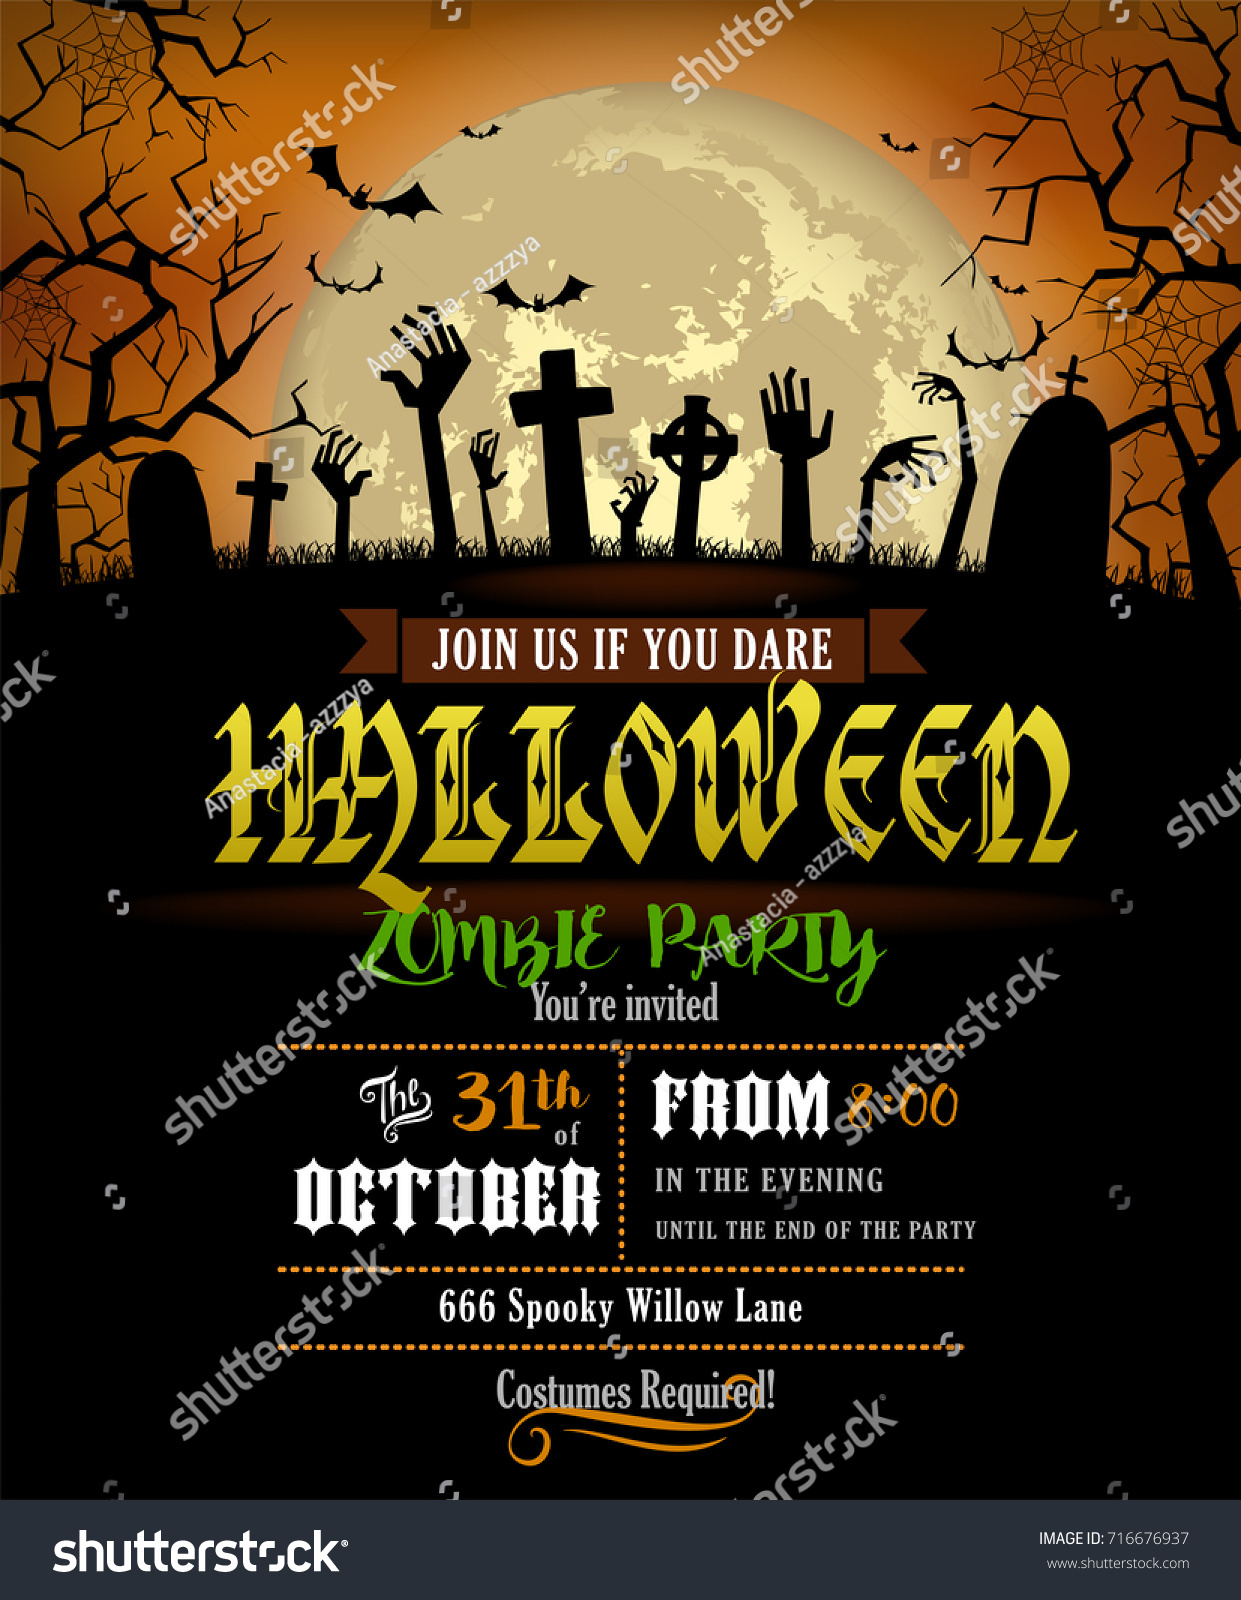 Halloween party invitation poster zombies party em vetor stock halloween party invitation poster zombies party em vetor stock 716676937 shutterstock stopboris Images